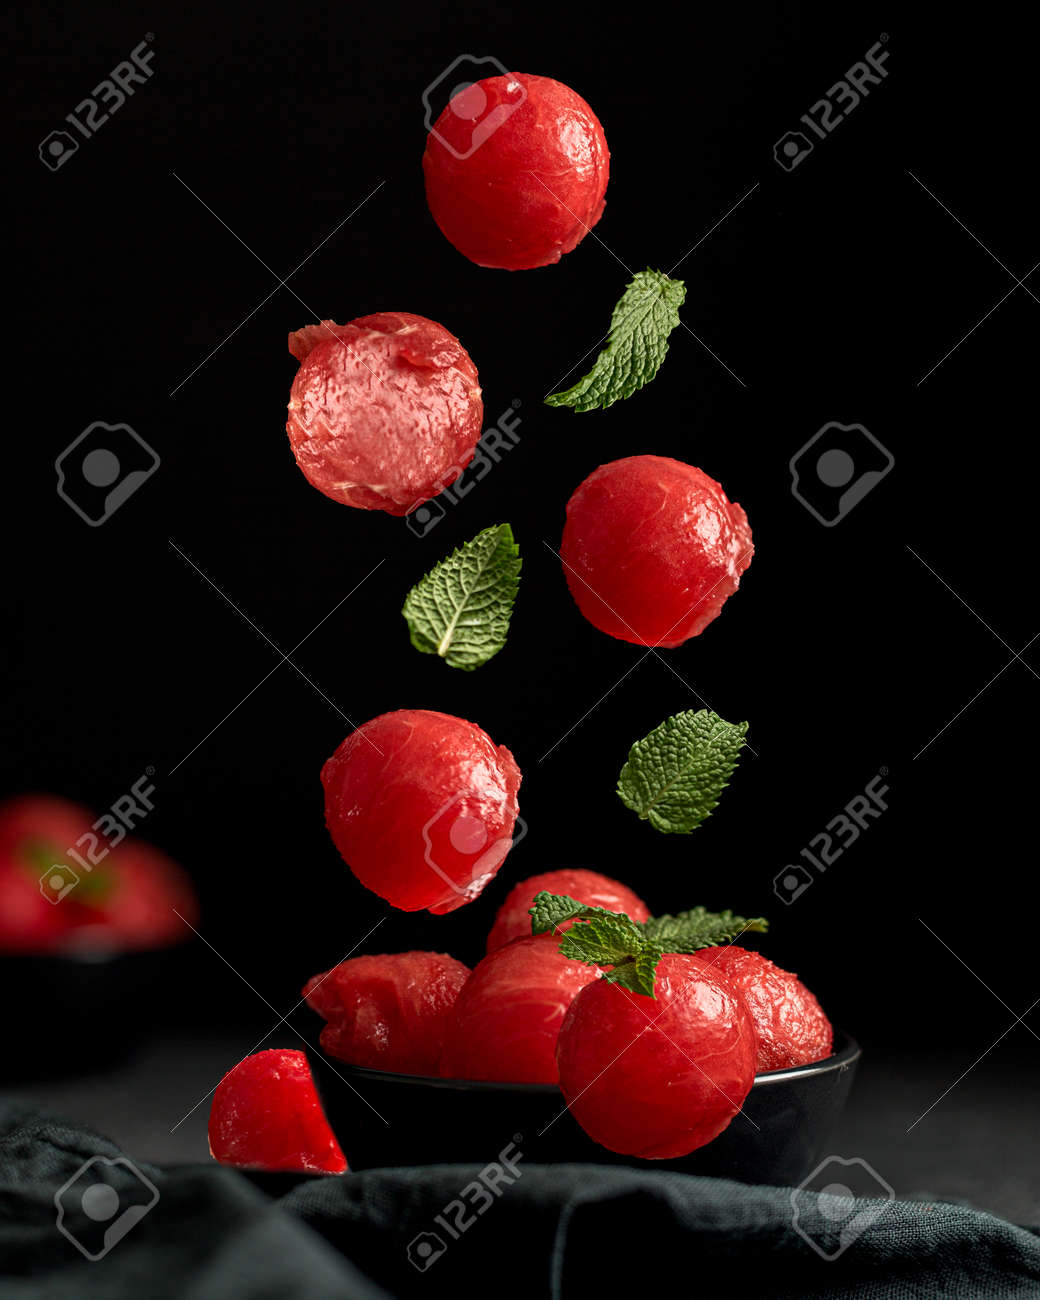 Creative concept with falling food on black backdrop - 173342448